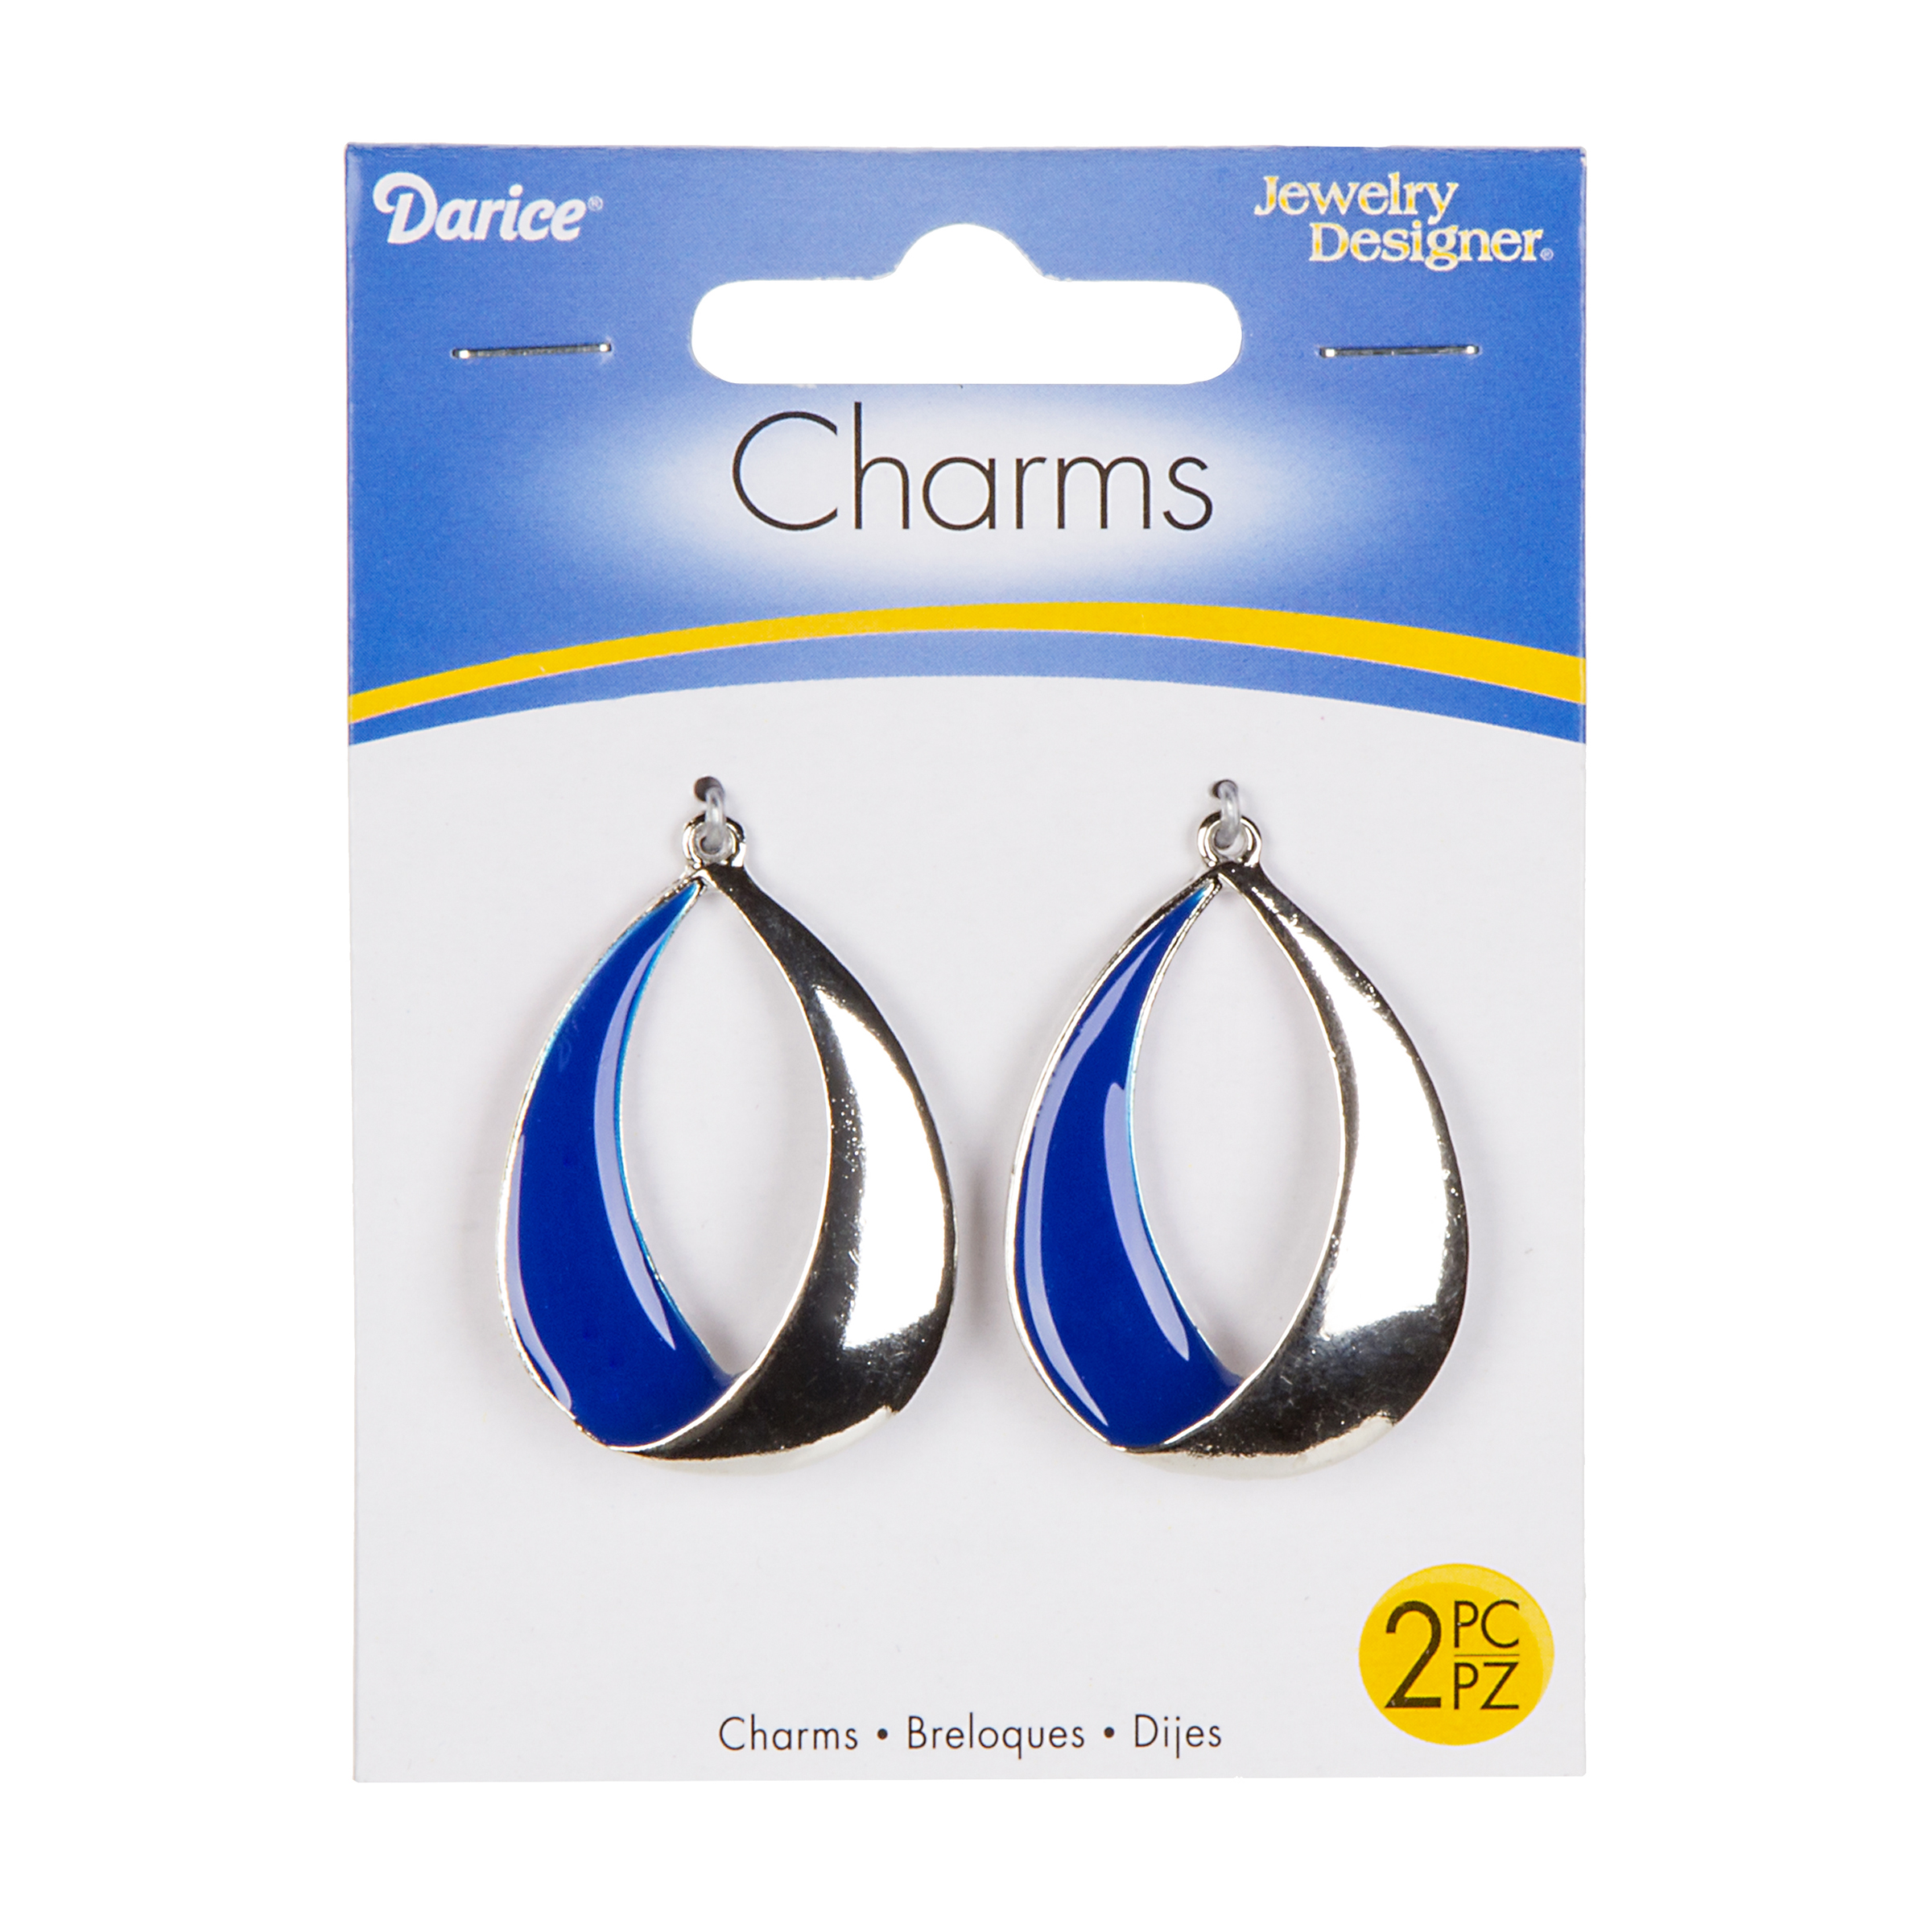 Silver Oval Metallic Charms with Blue Enameling, 2pcs./pkg